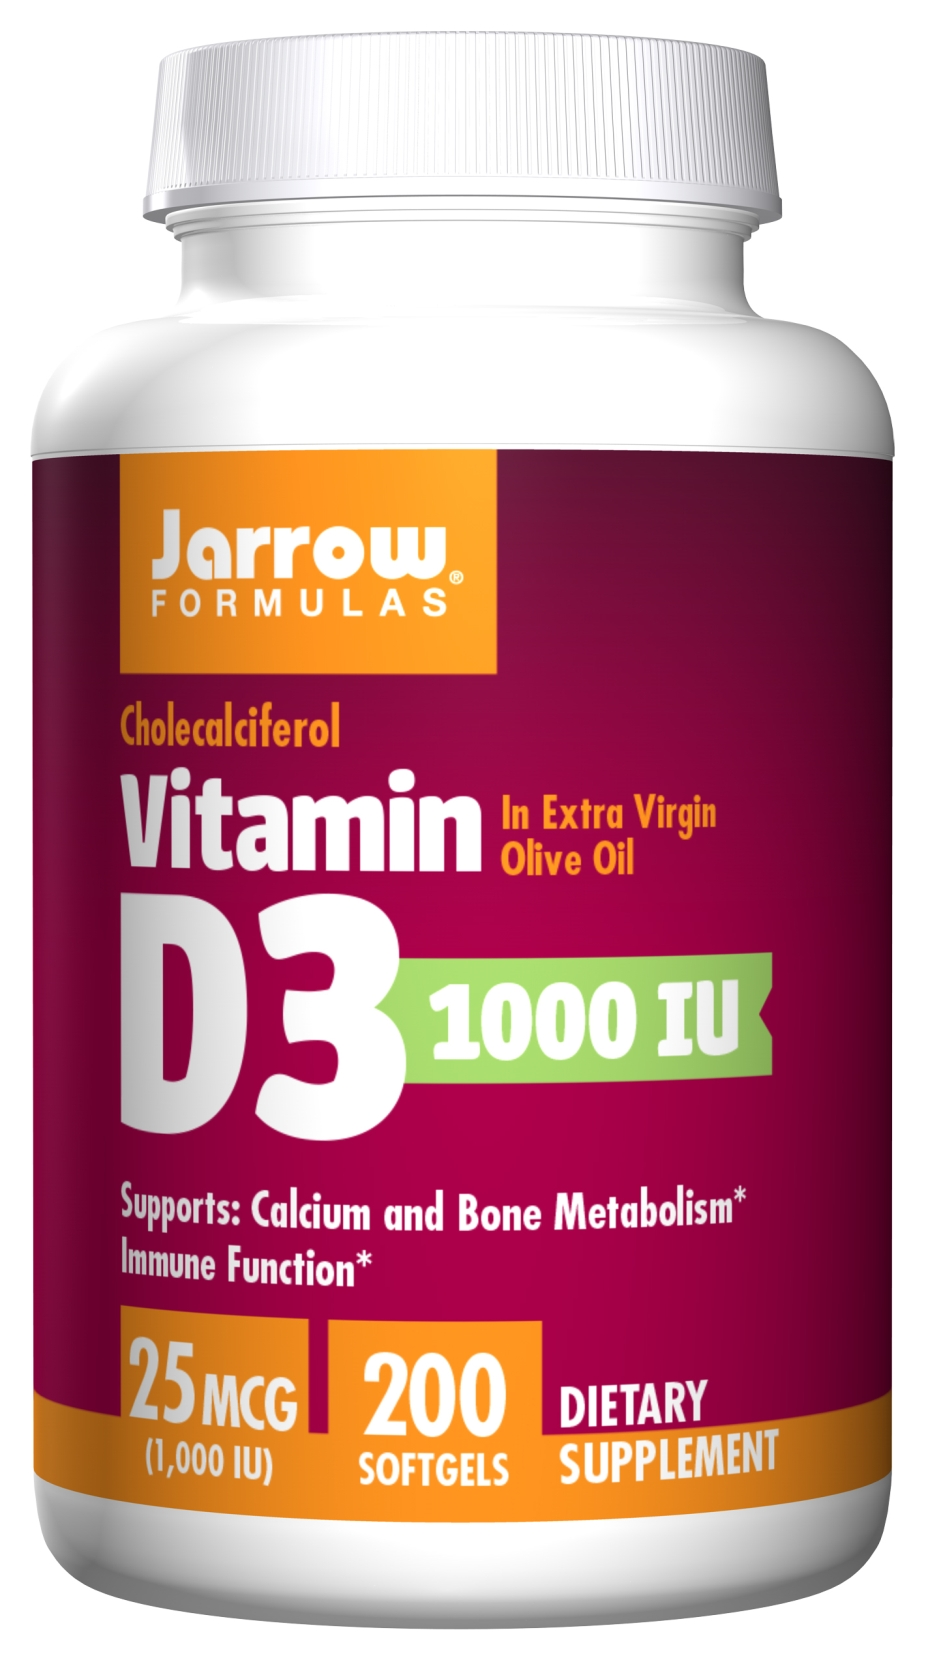 Vitamin D3 1000 IU 200 sgels by Jarrow Formulas